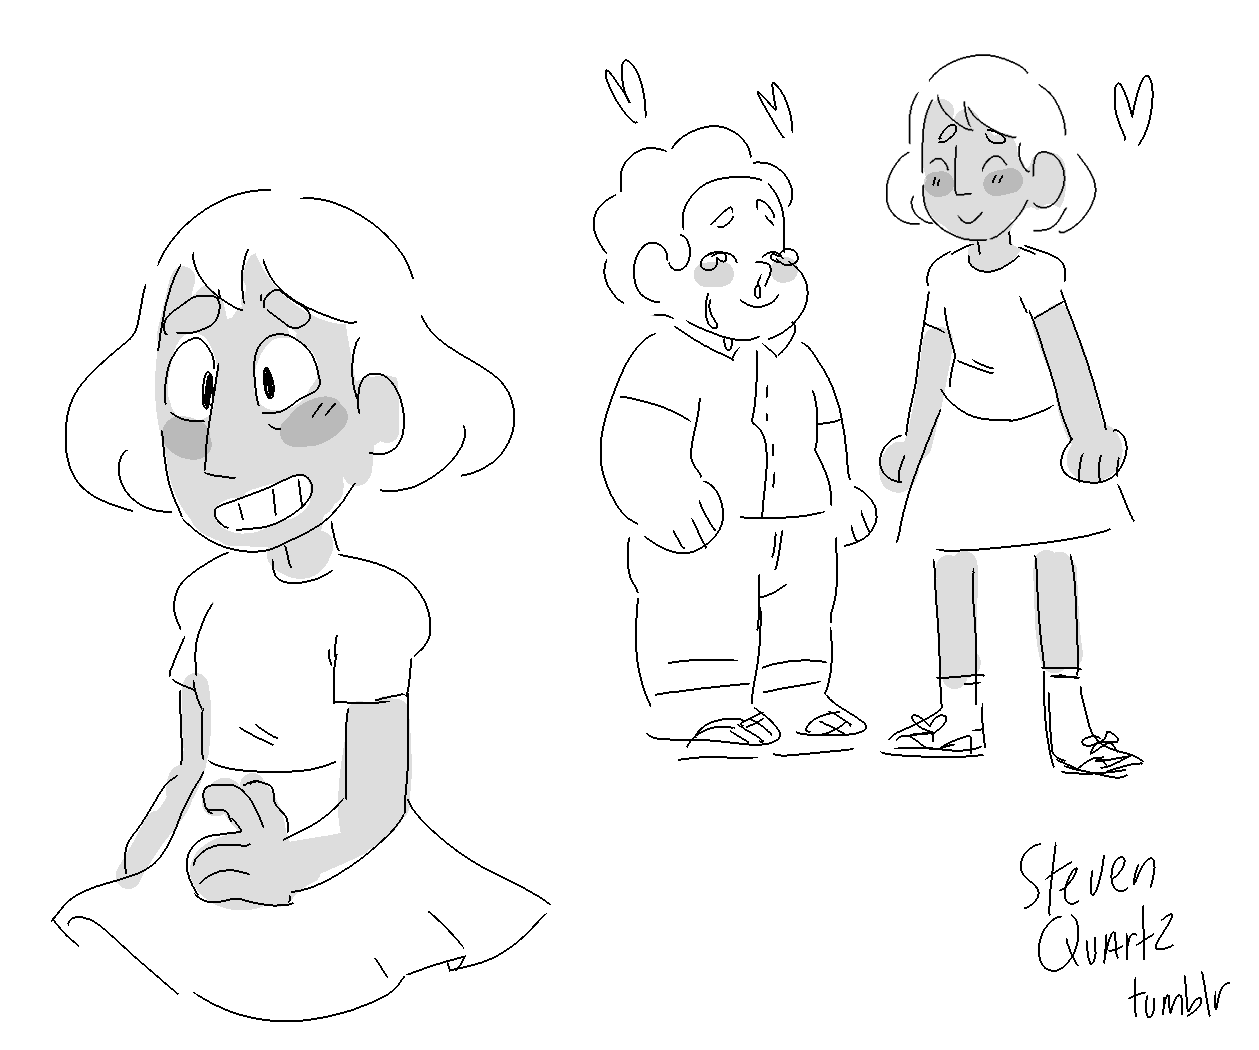 UGHHHHH KEVIN PARTY WAS ONLY GOOD BECAUSE OF STEVEN AND CONNIE